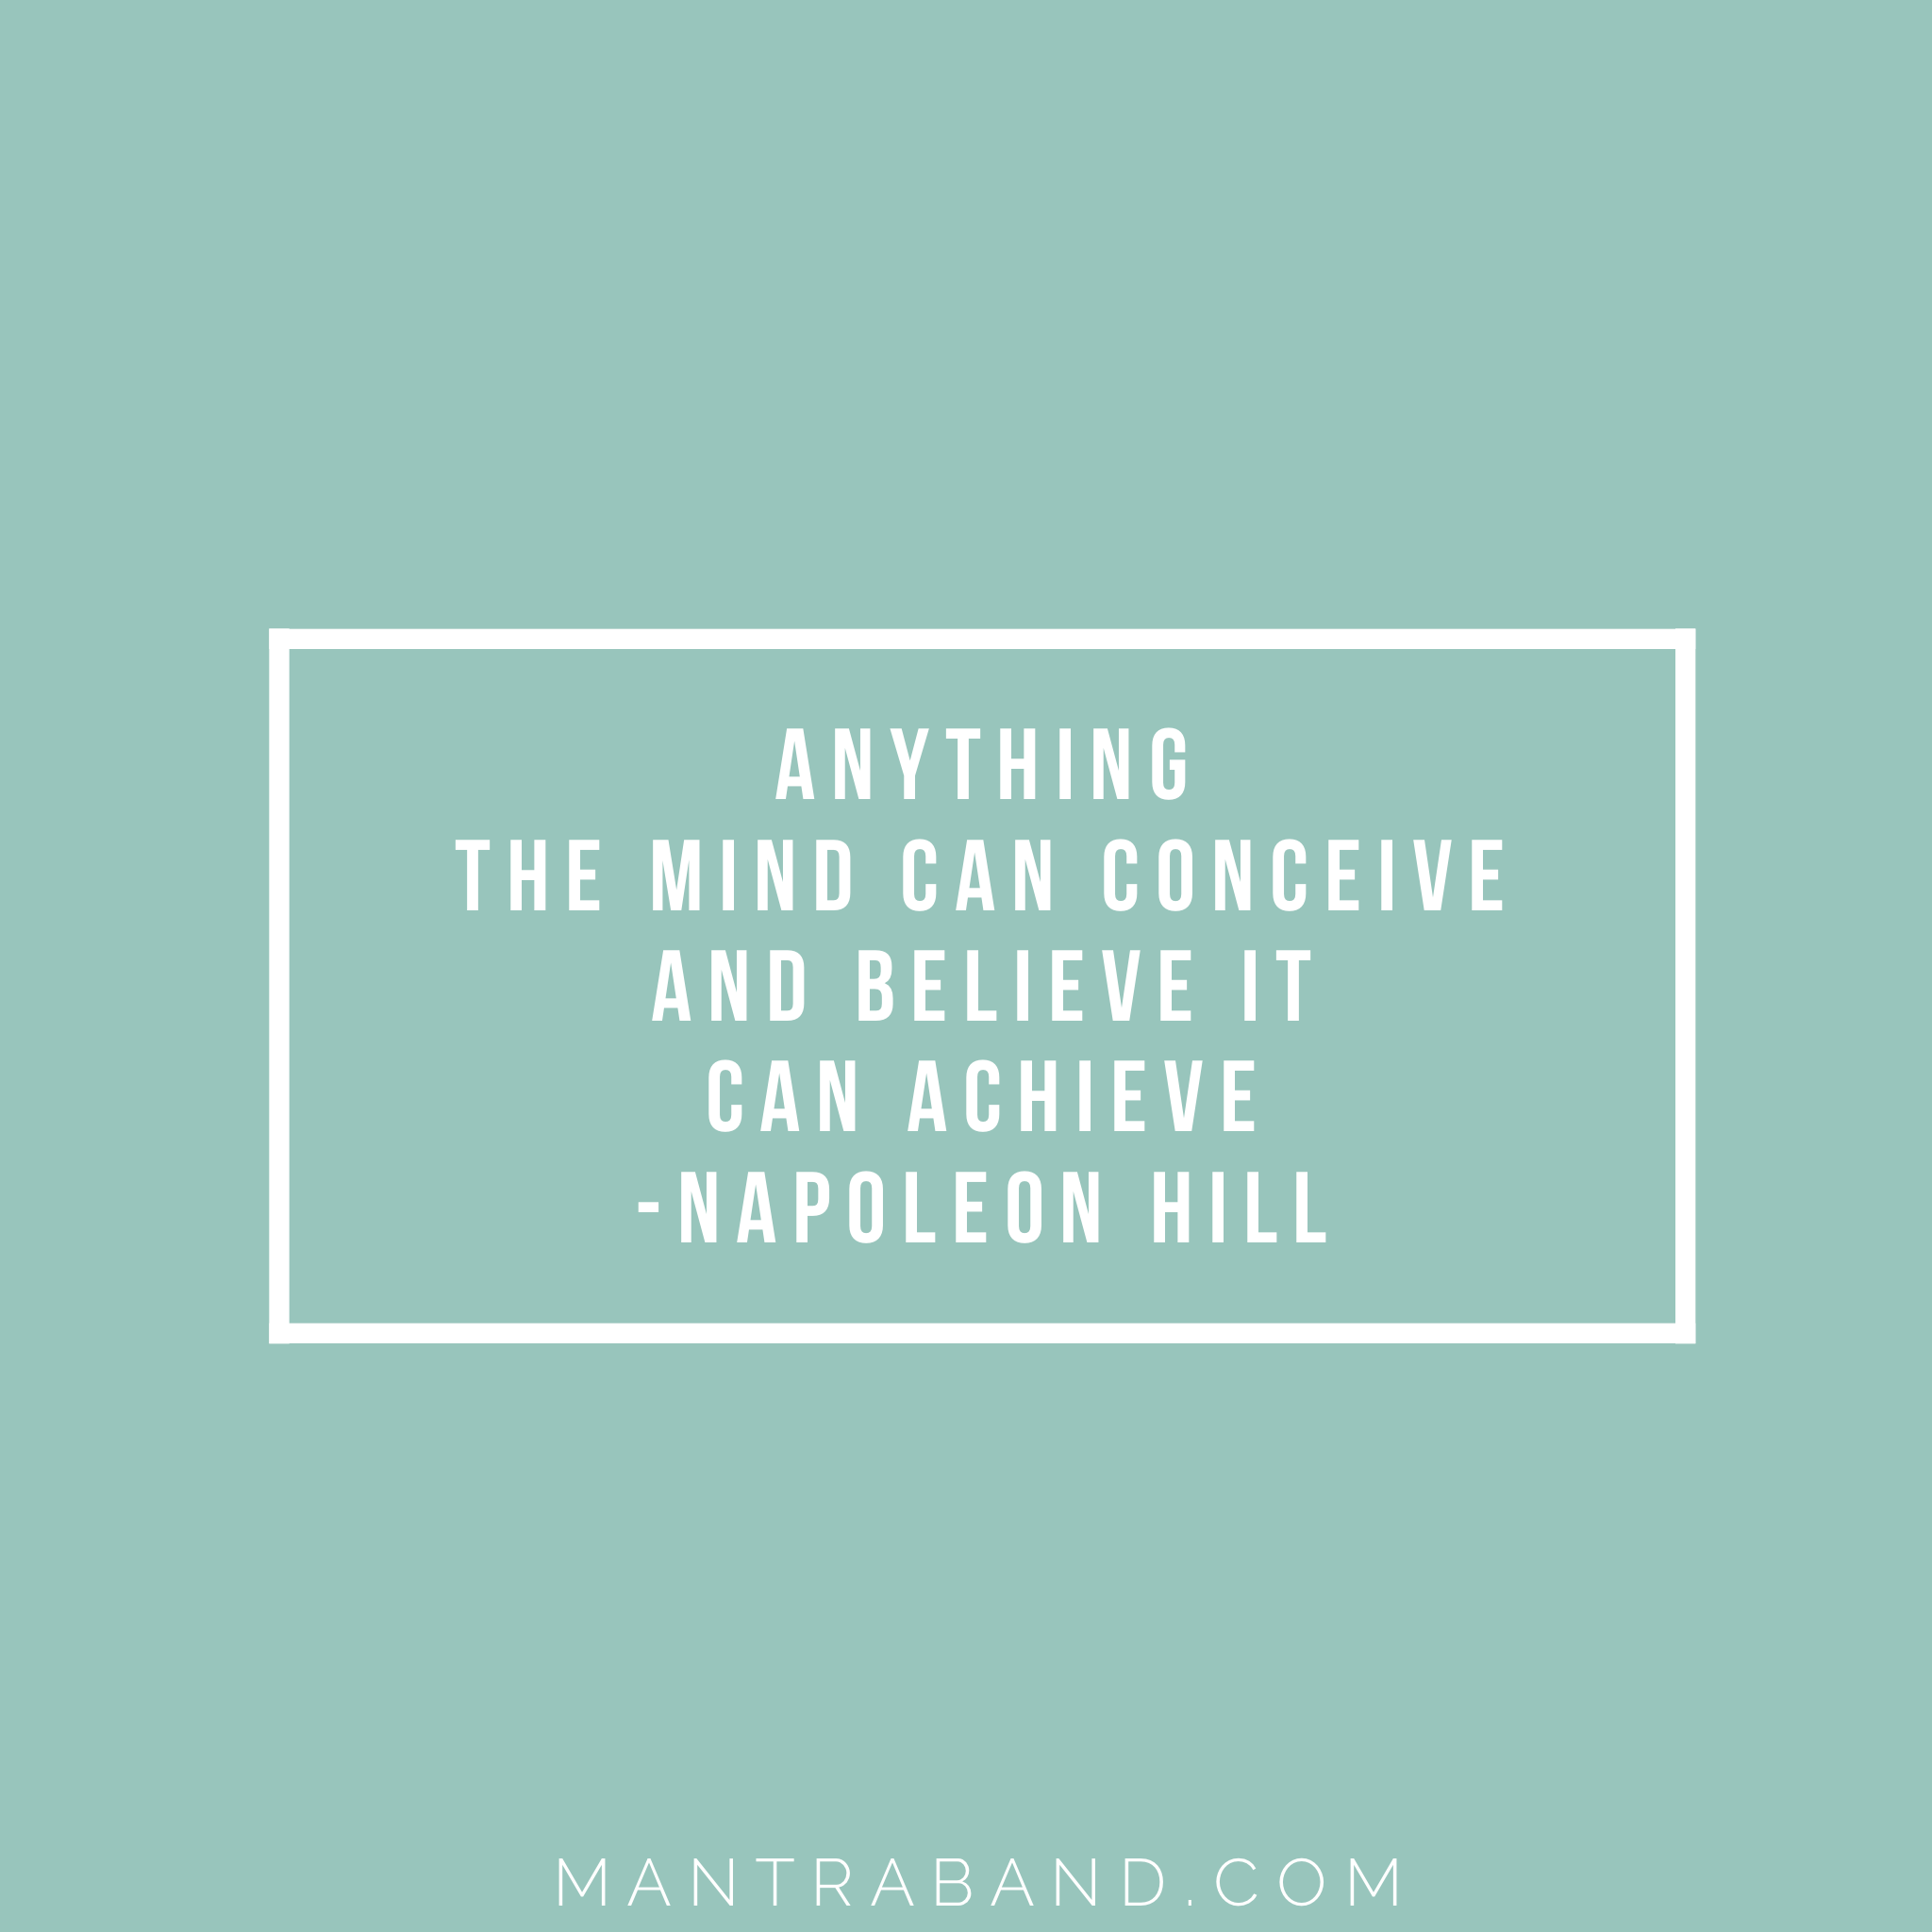 Anything the mind can conceive and believe it can achieve ...